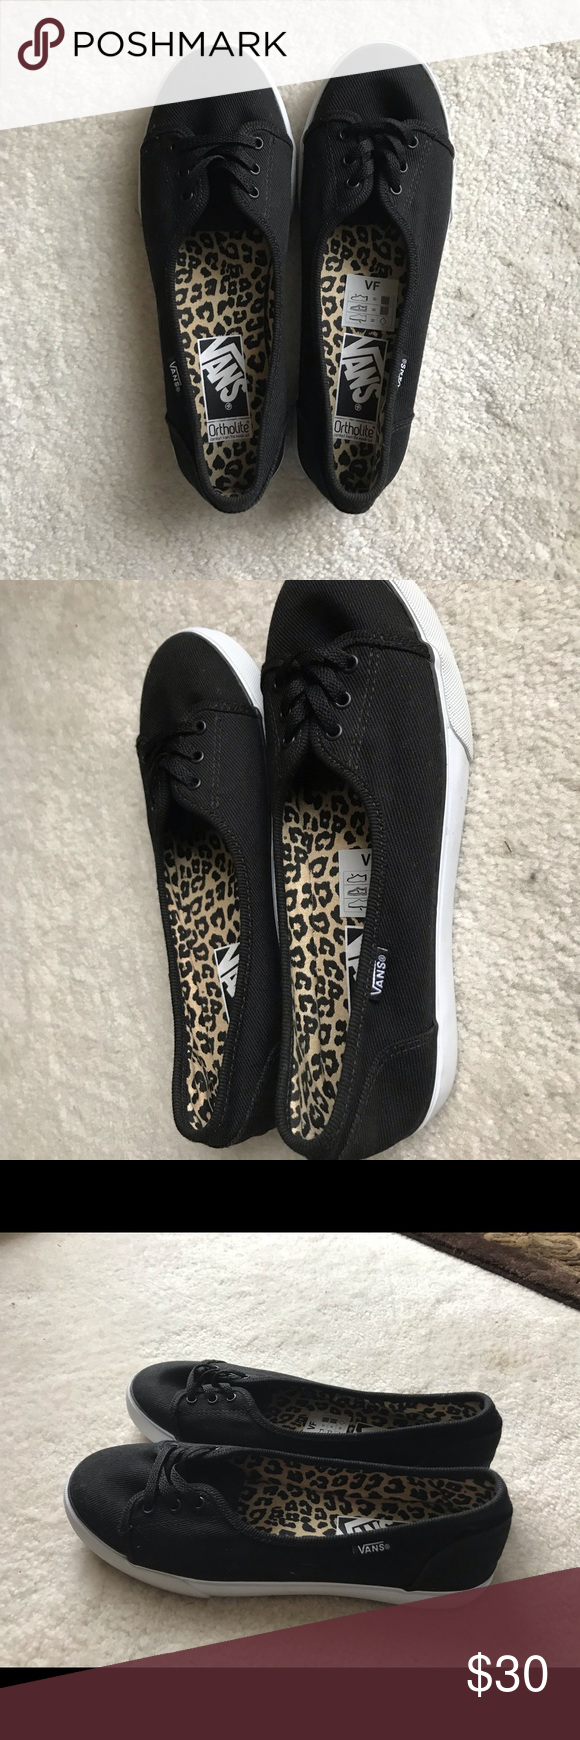 a02adbbd509a Black white vans ladies shoes for sale brand new never worn tag png  580x1740 Vans ladies